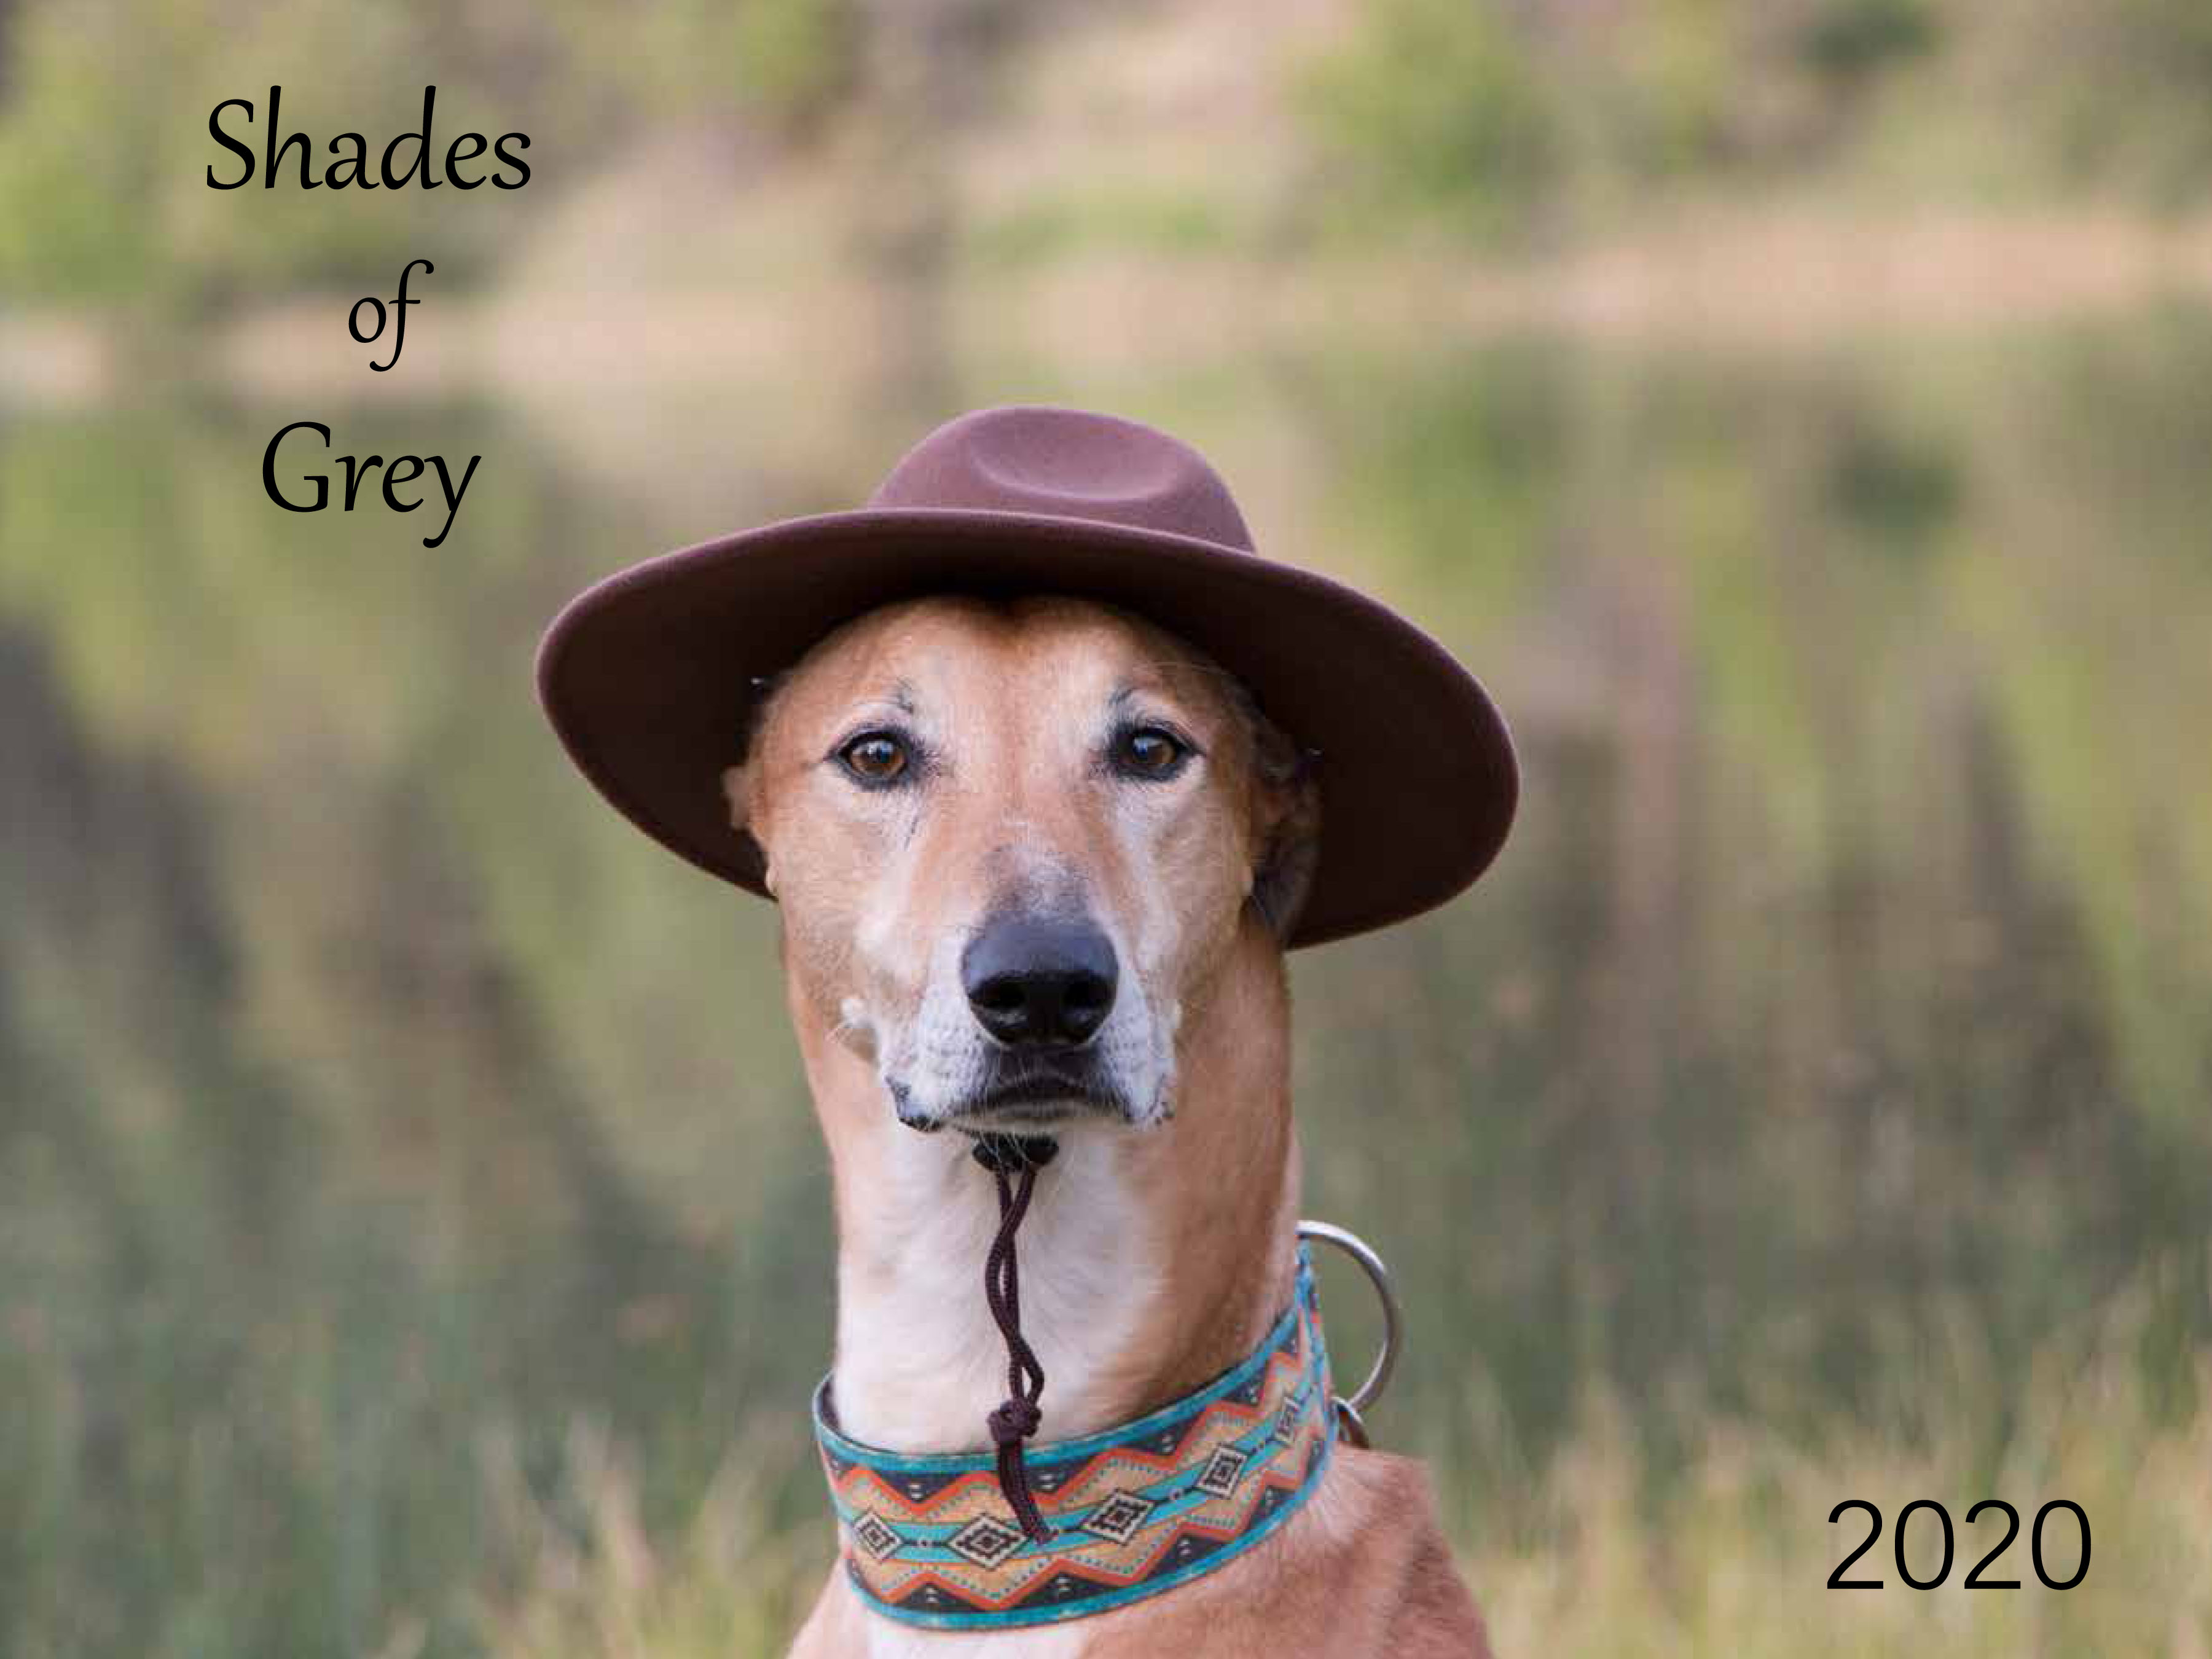 Shades of Grey 2020 front cover picture